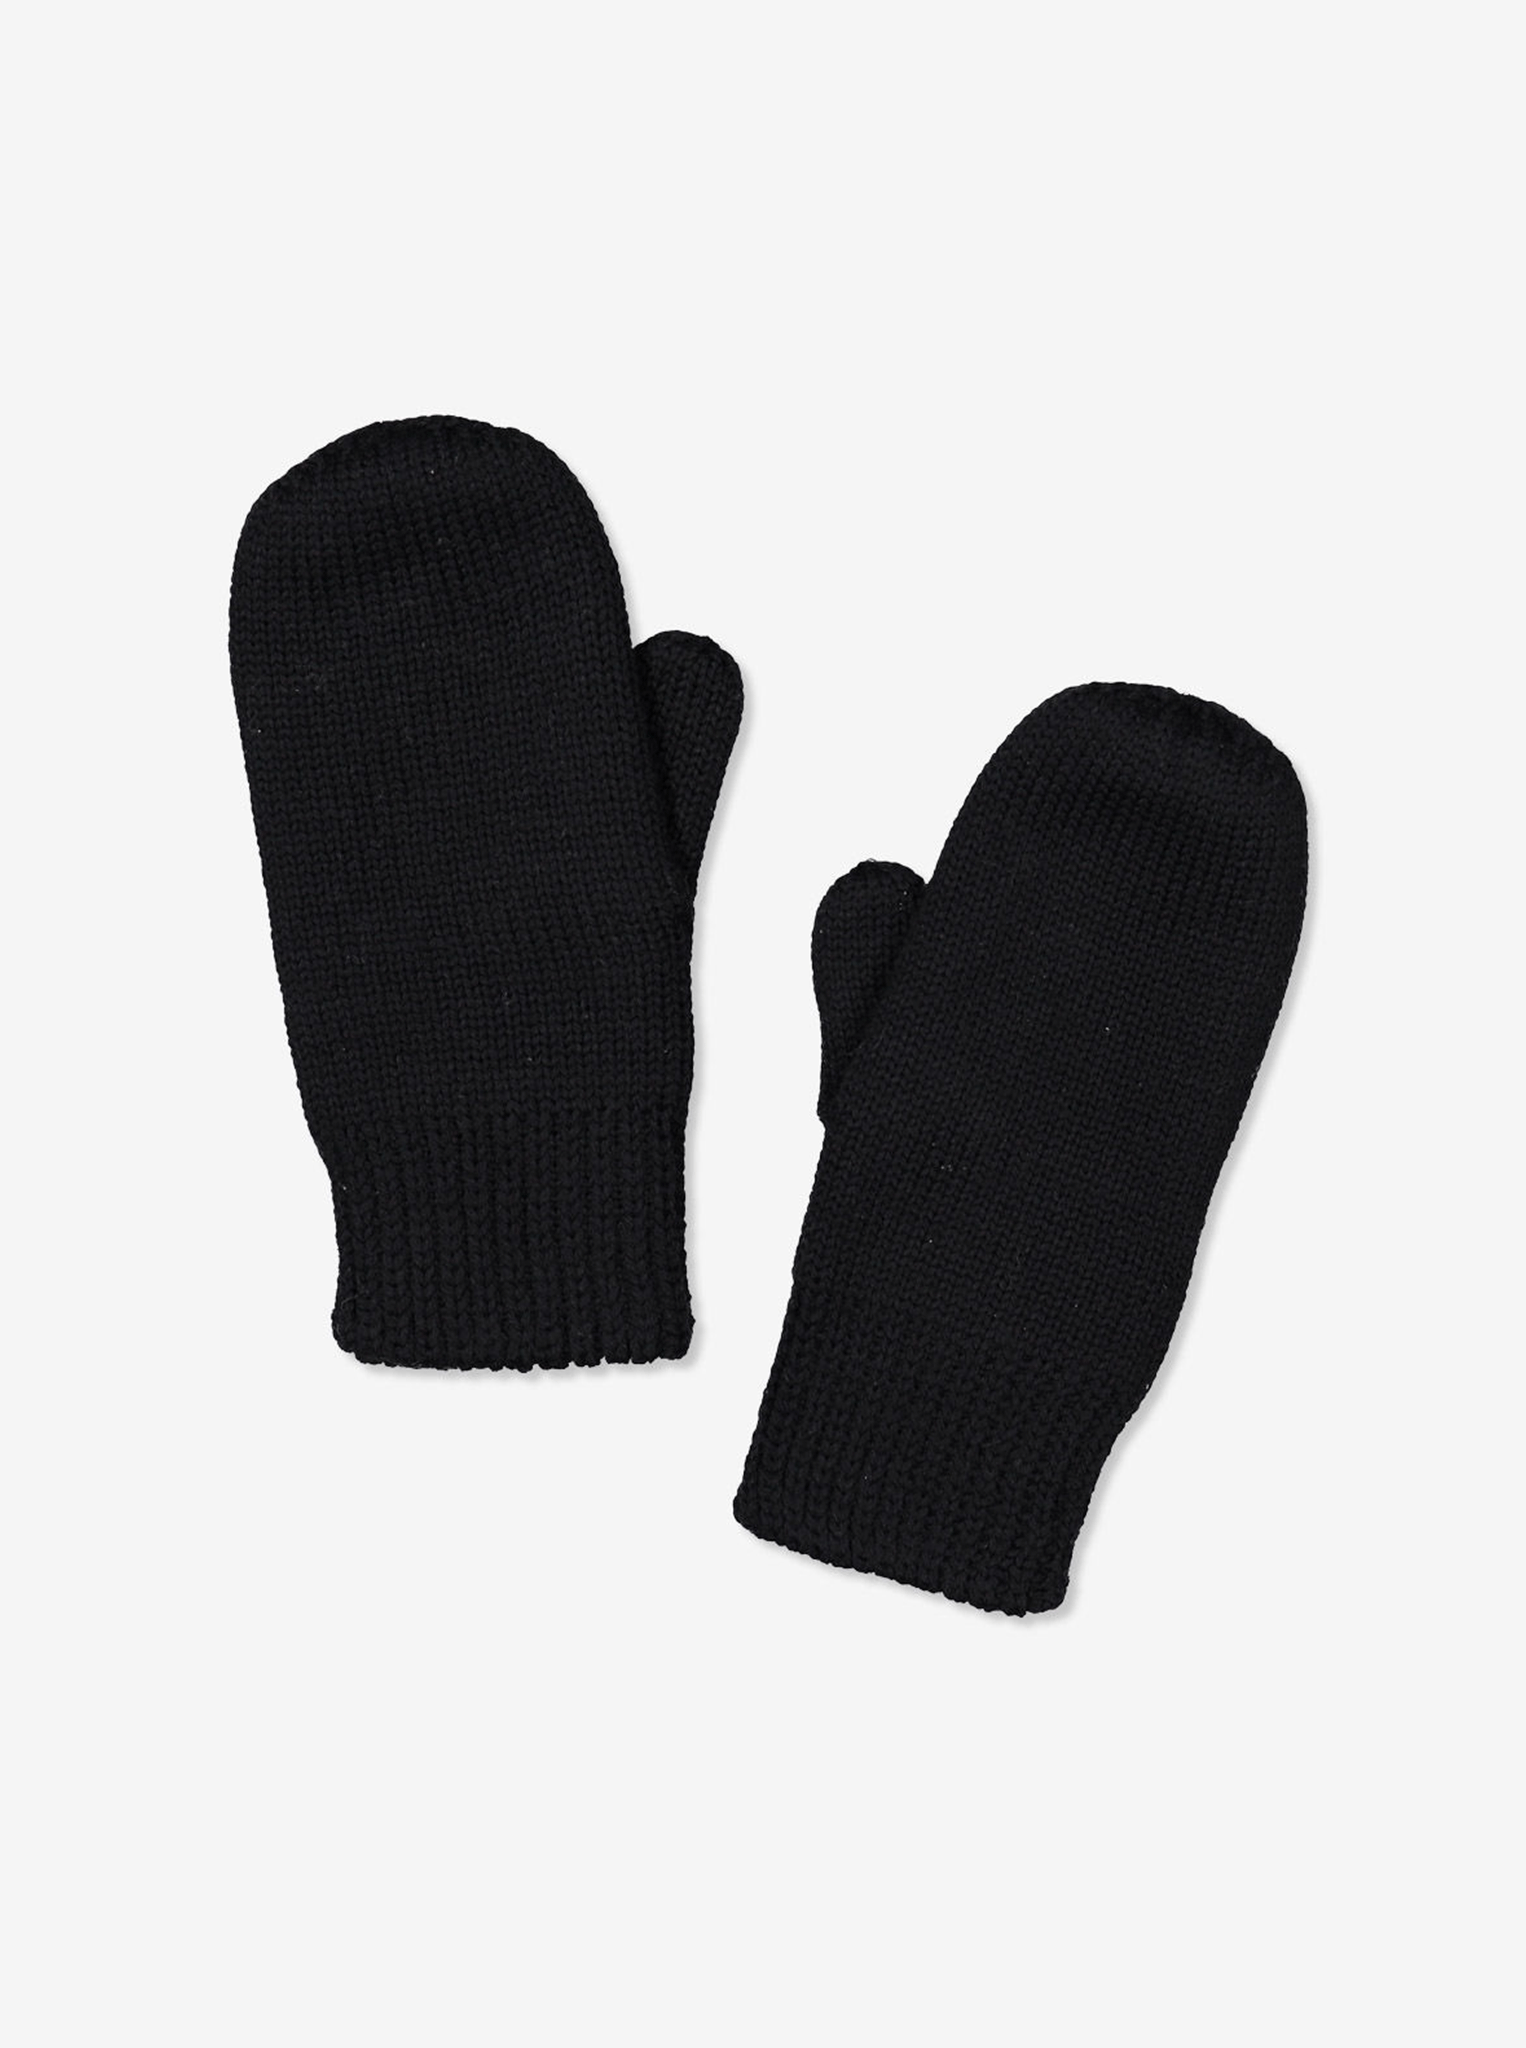 Unisex-Double-Knit Wool Mittens -Black-6m-12y